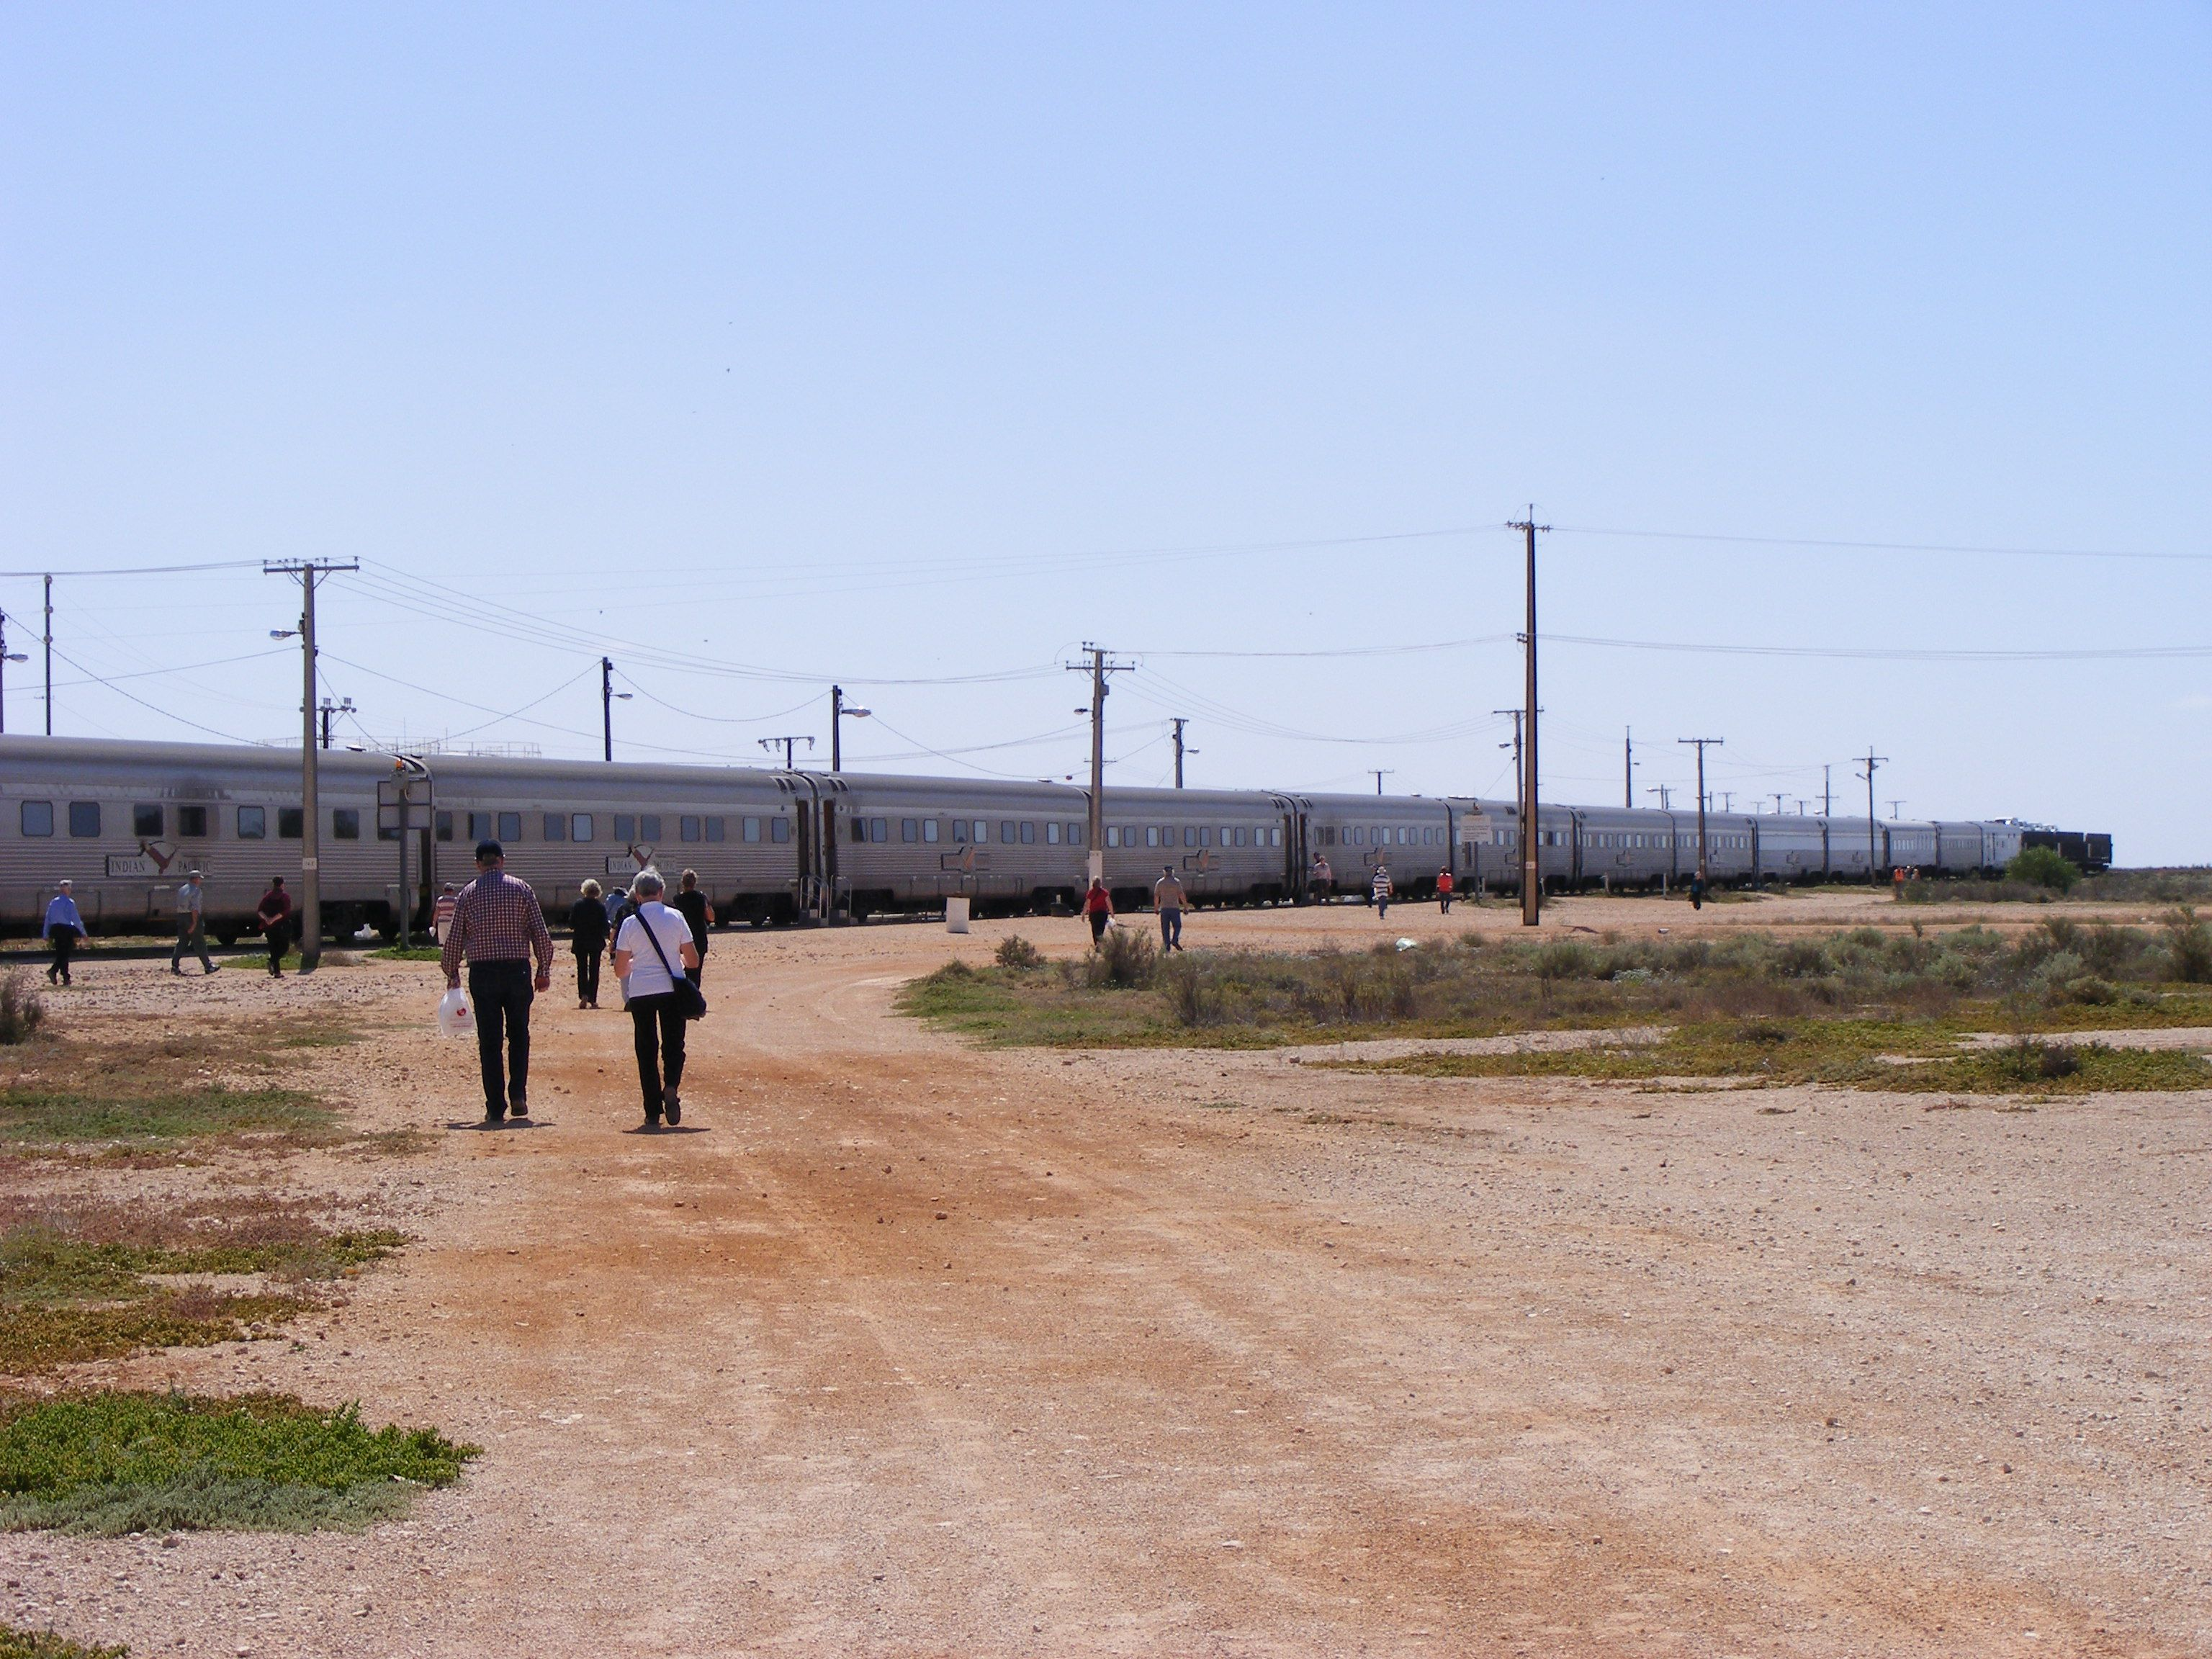 Indian Pacific stopped at Cook in the middle of the Nullarbor